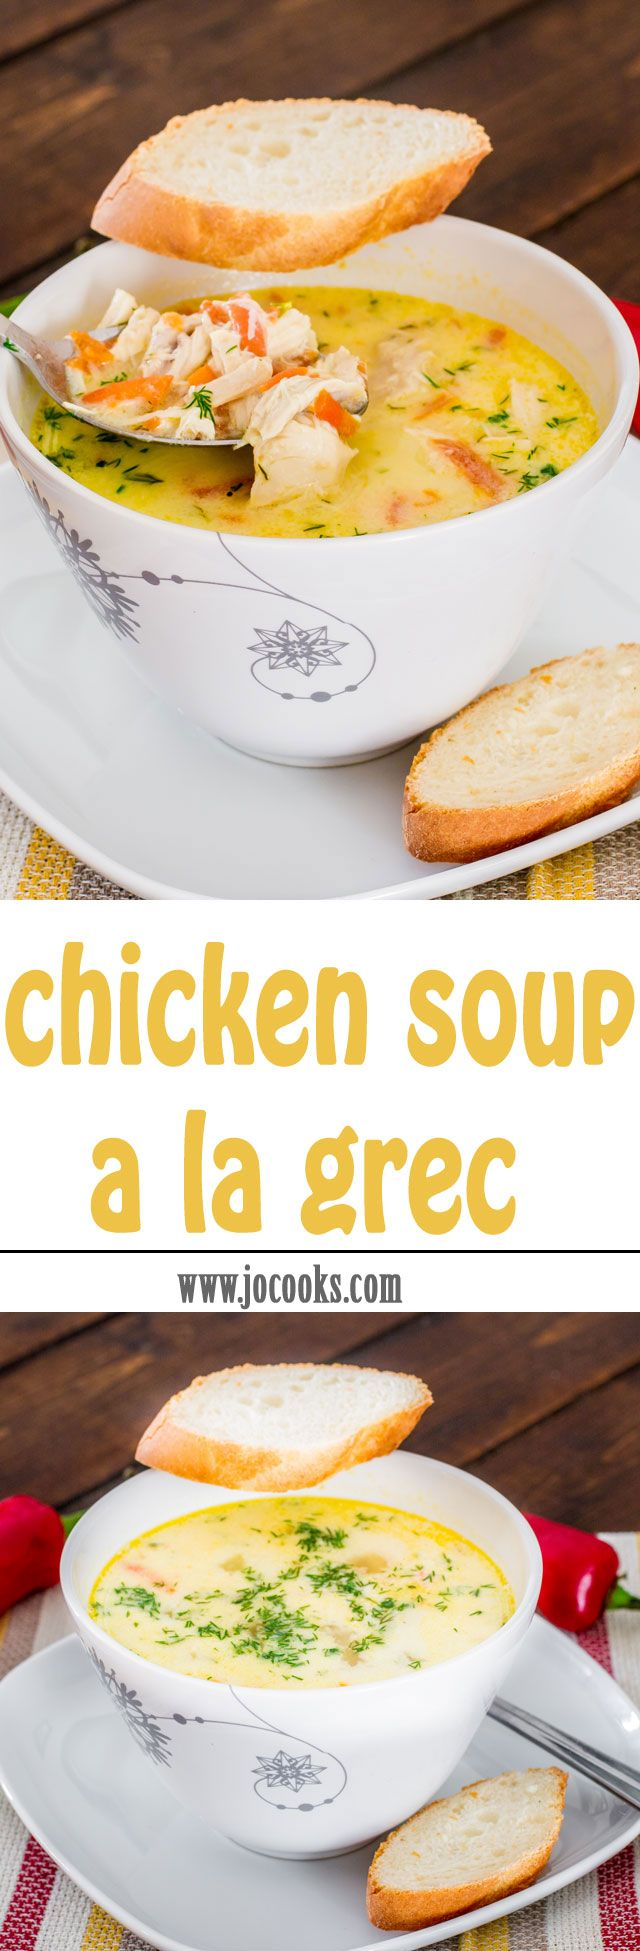 Chicken Soup A La Grec – comforting soup made from scratch, perfect for a cold day.